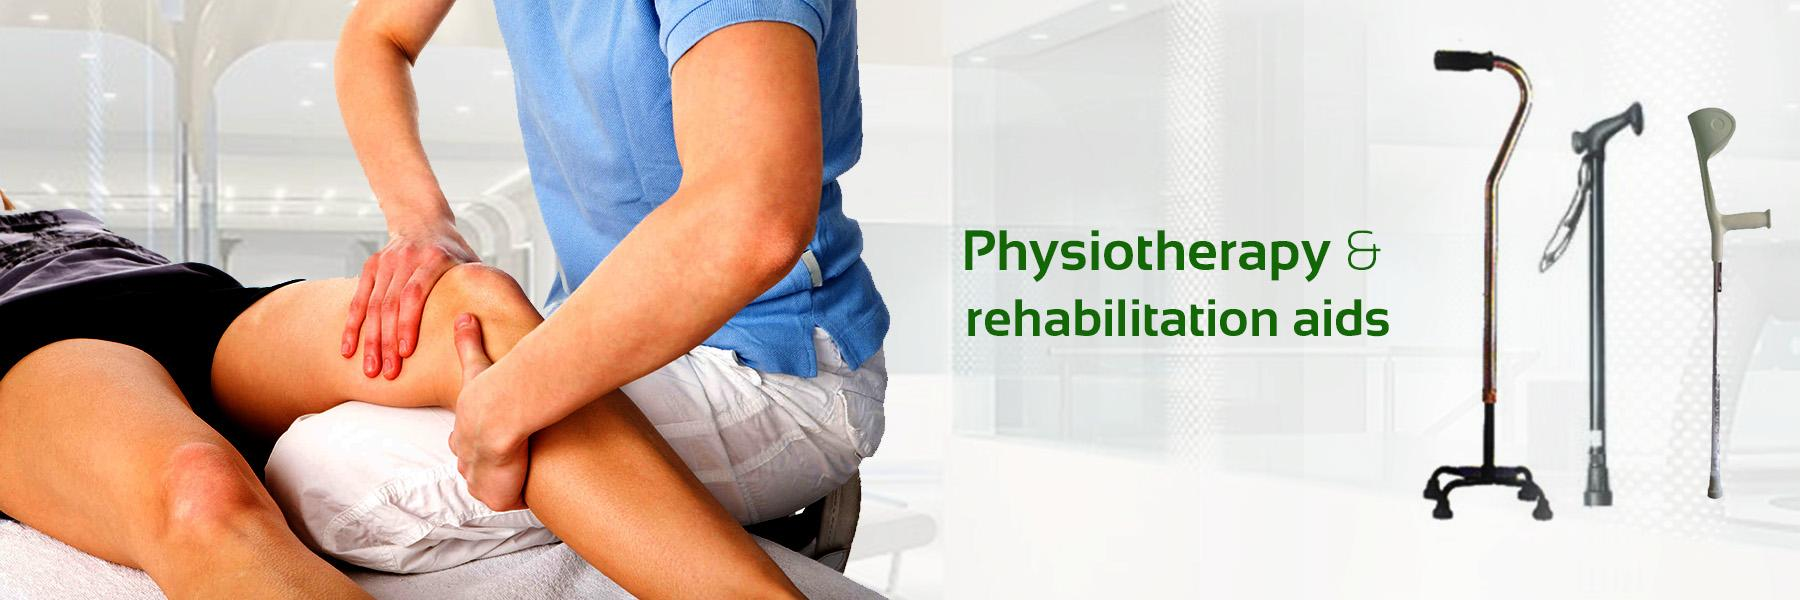 Physiotherapy and rehabilitation aids